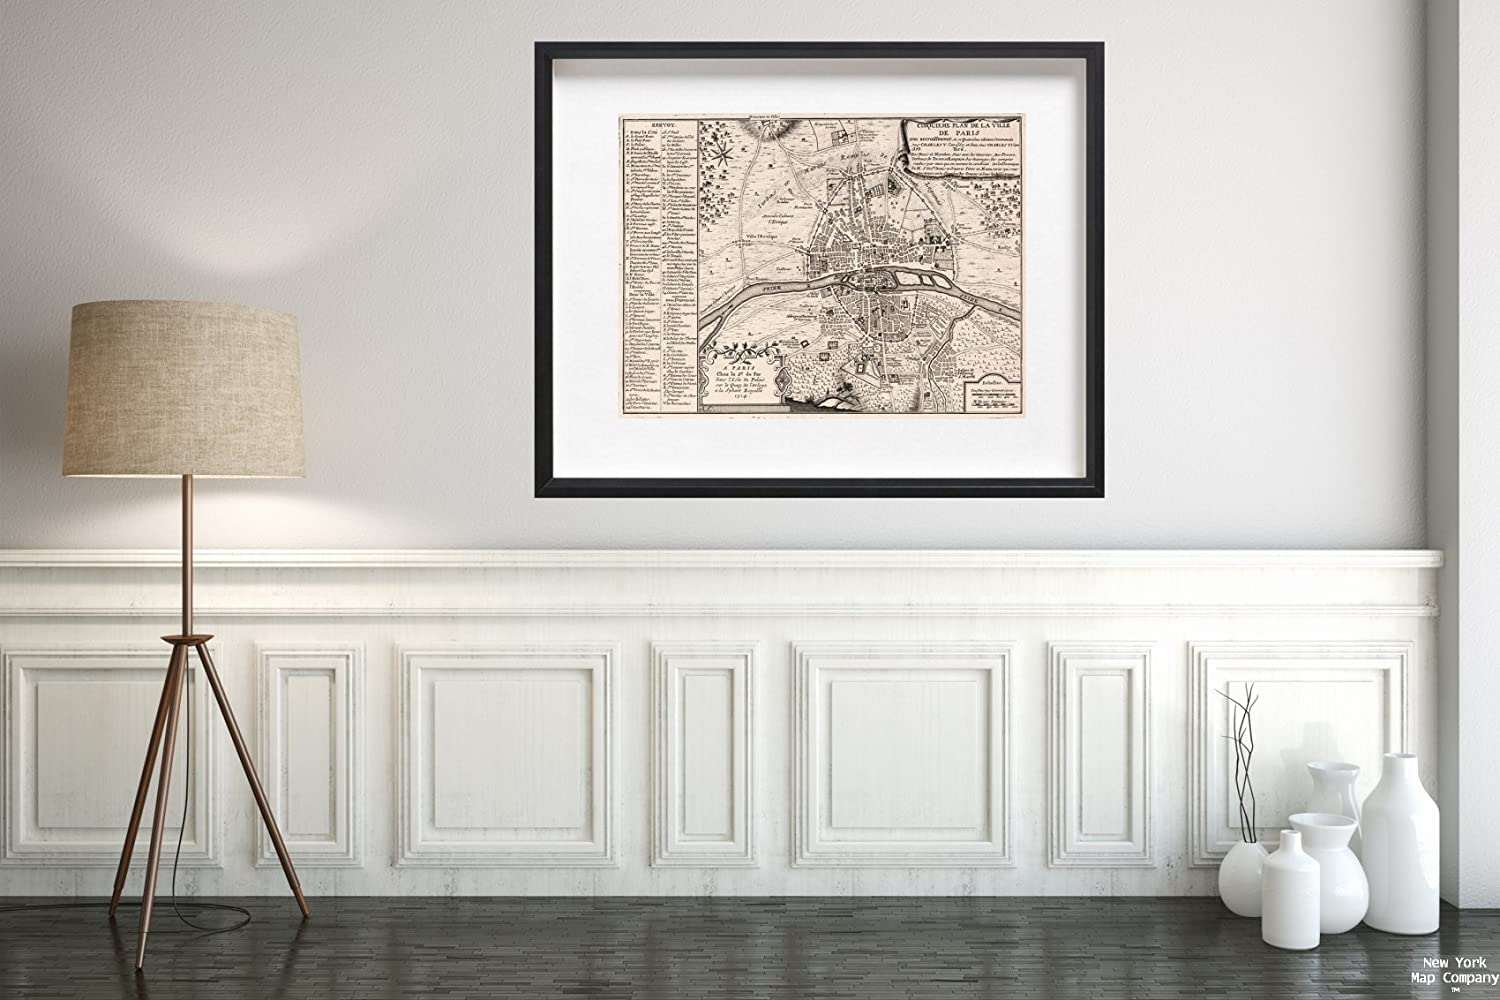 Amazon.com: Map|World Atlas, Cinquieme Plan de La Ville de Paris. 1714|Historic Antique Vintage Reprint|Size: 18x24|Ready to Frame: Posters & Prints